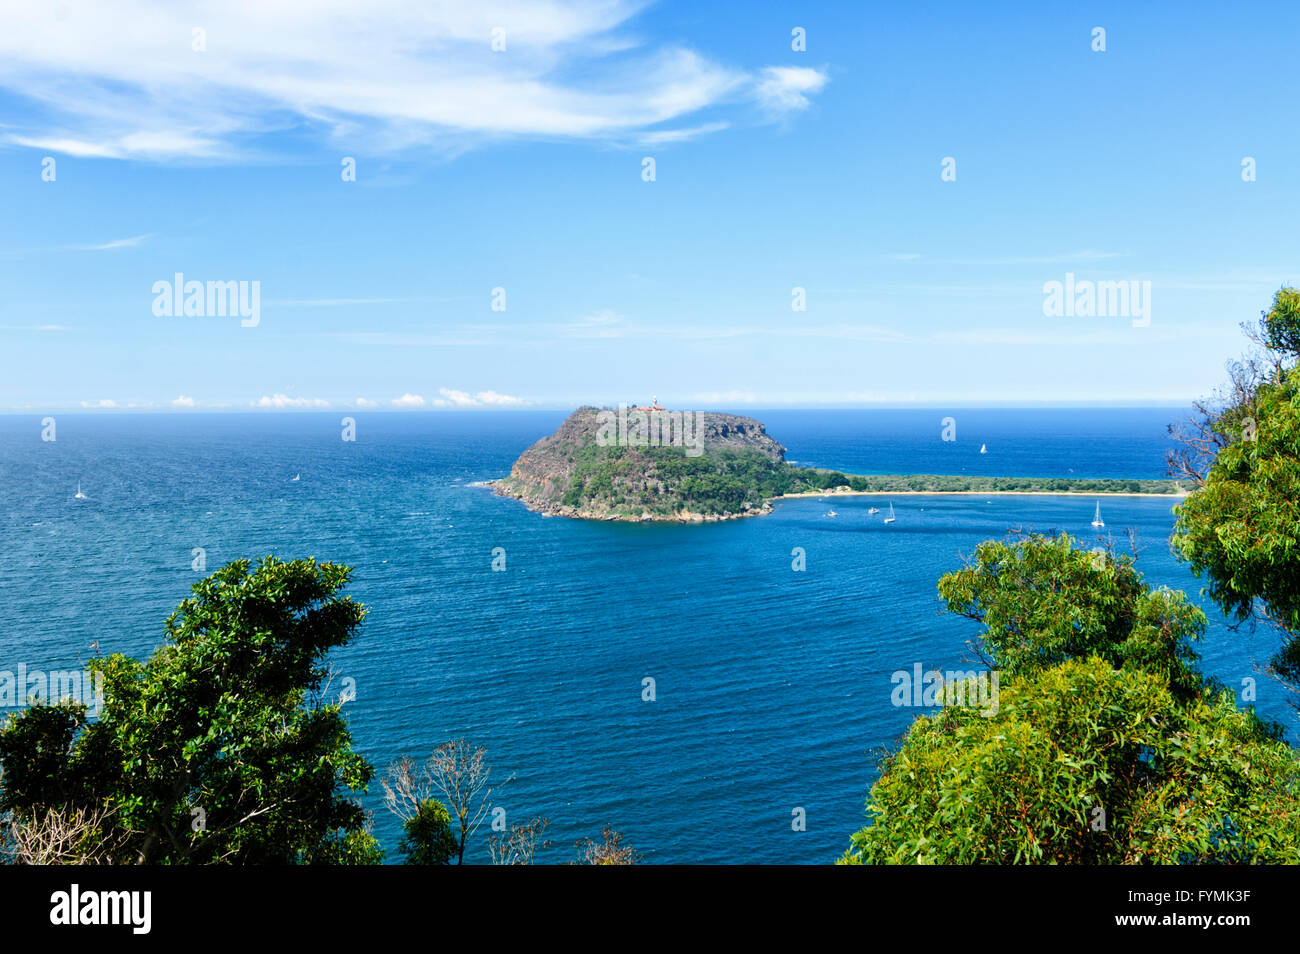 Vue de l'Ouest Chef Lookout, Ku-ring-gai Chase National Park, New South Wales, Australie Photo Stock